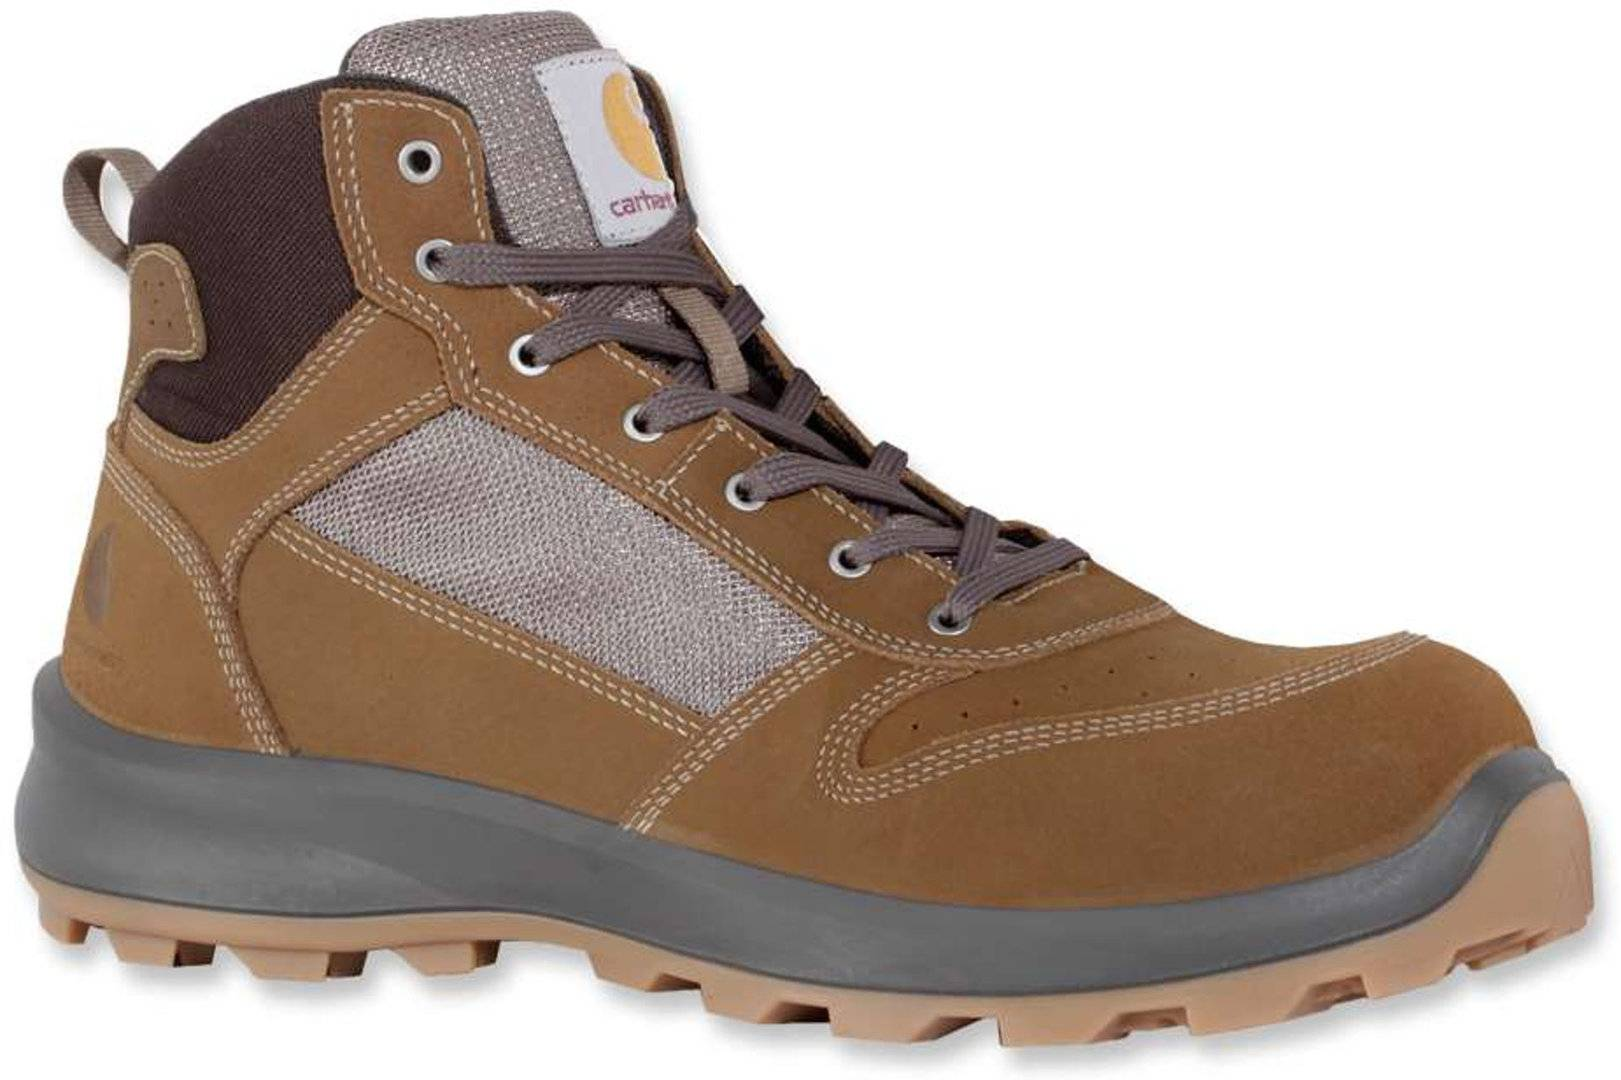 Carhartt Mid S1P Safety Bottes Brun taille : 39